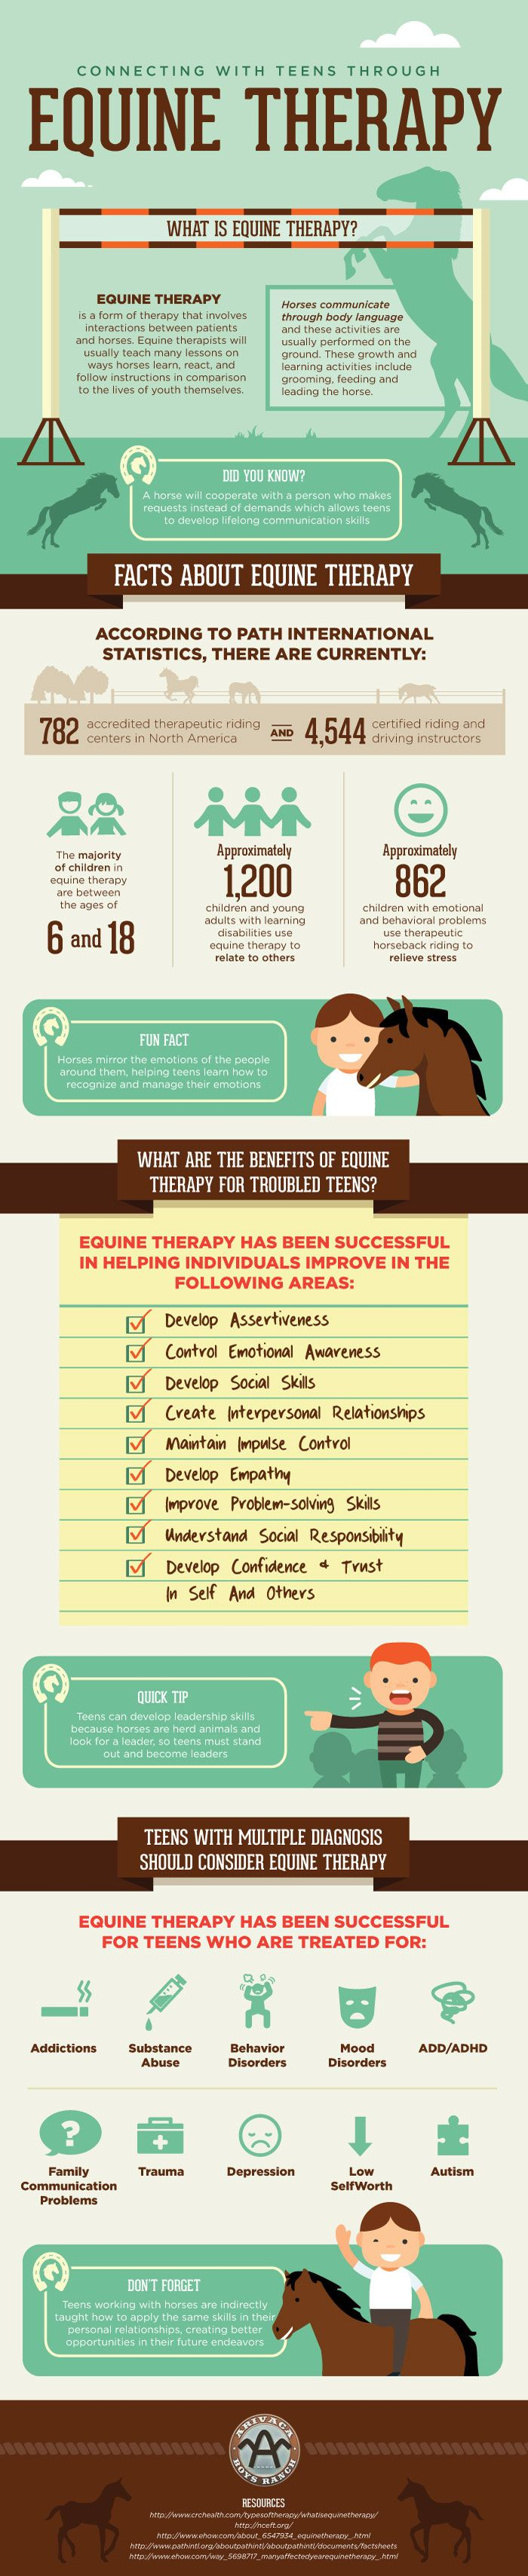 There is something special about the bond between man and horse that can help in many ways. Equine therapy provided at therapeutic boarding schools can help control your teen. Enjoy the infographic below that explains how to connect with teens through equine therapy.See more inside.: http://arivacaboysranch.com/